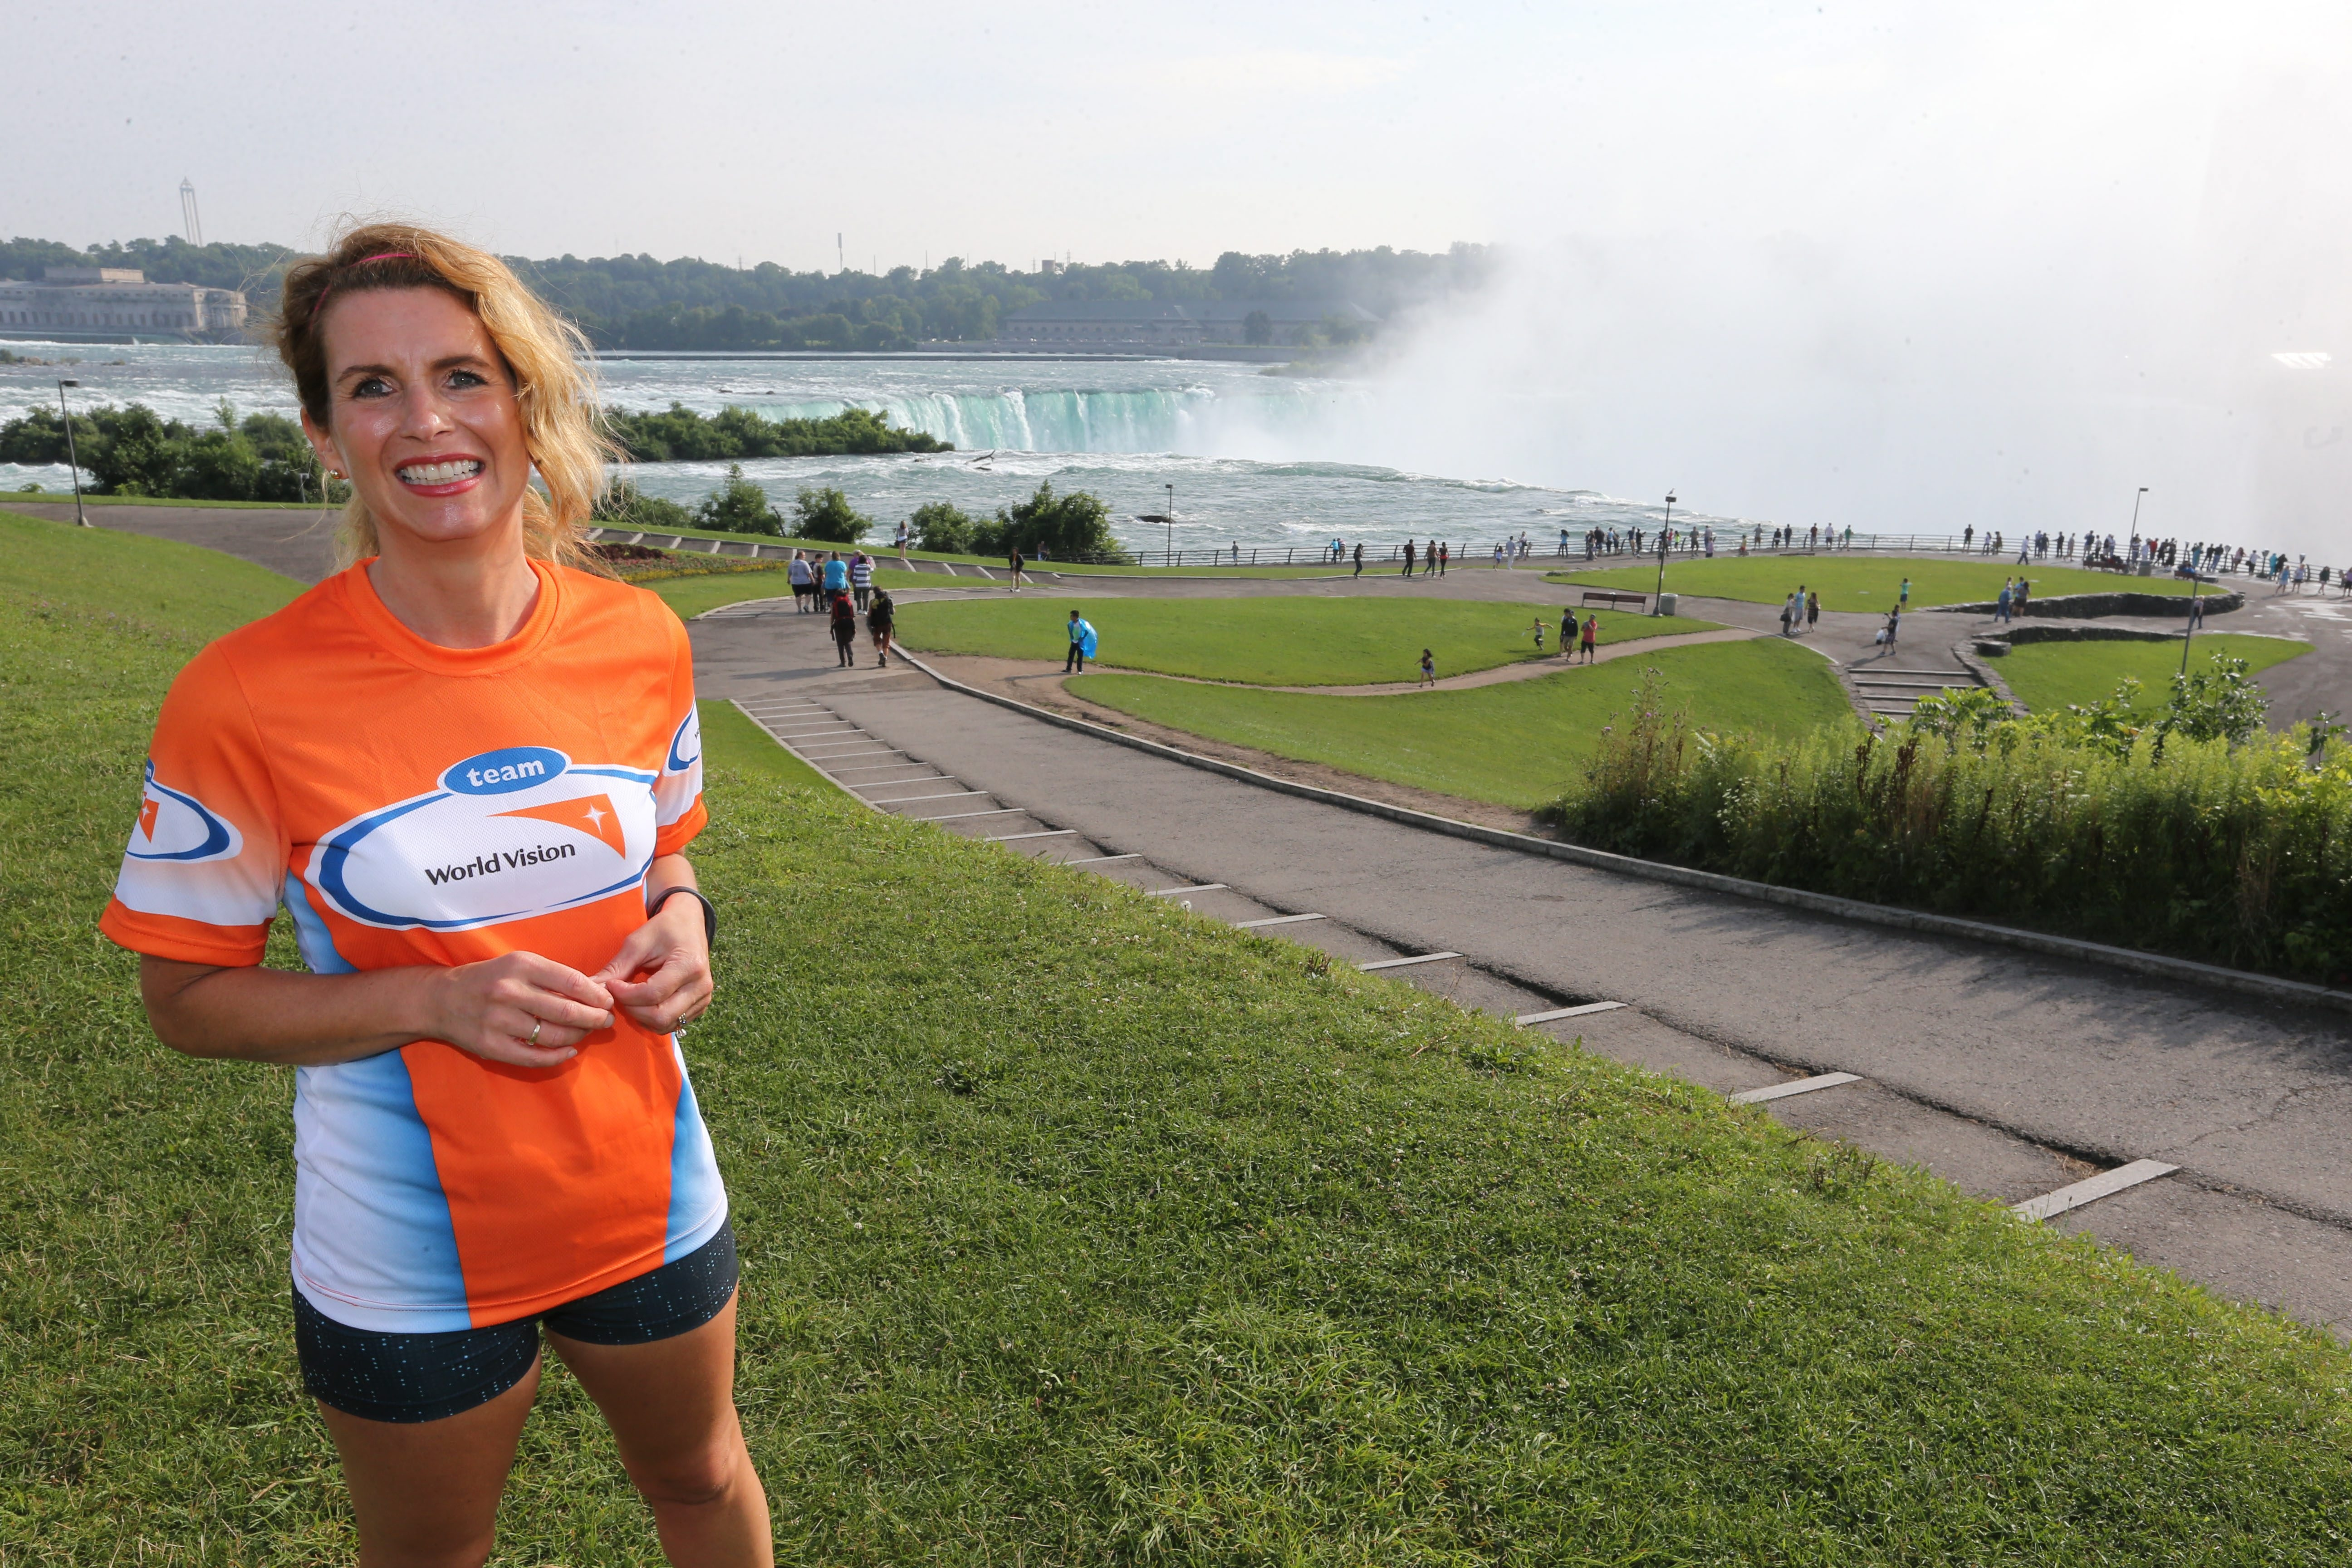 Michele G. Bergevin is running for a cause.